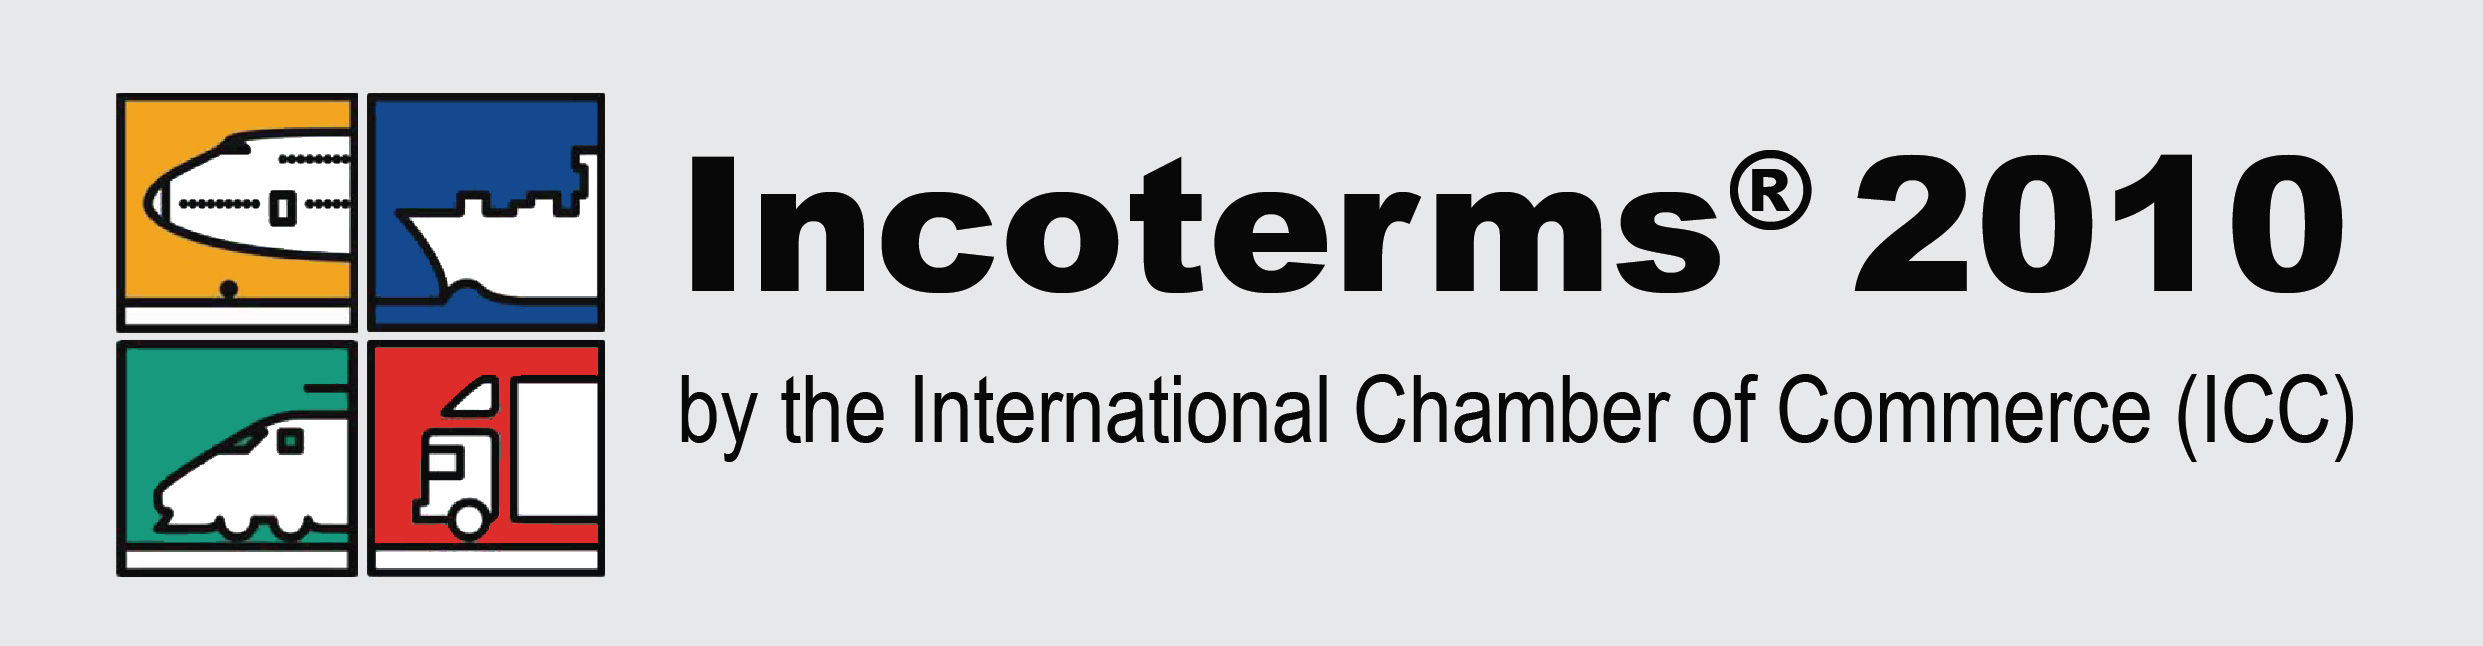 banner incoterms2010 01